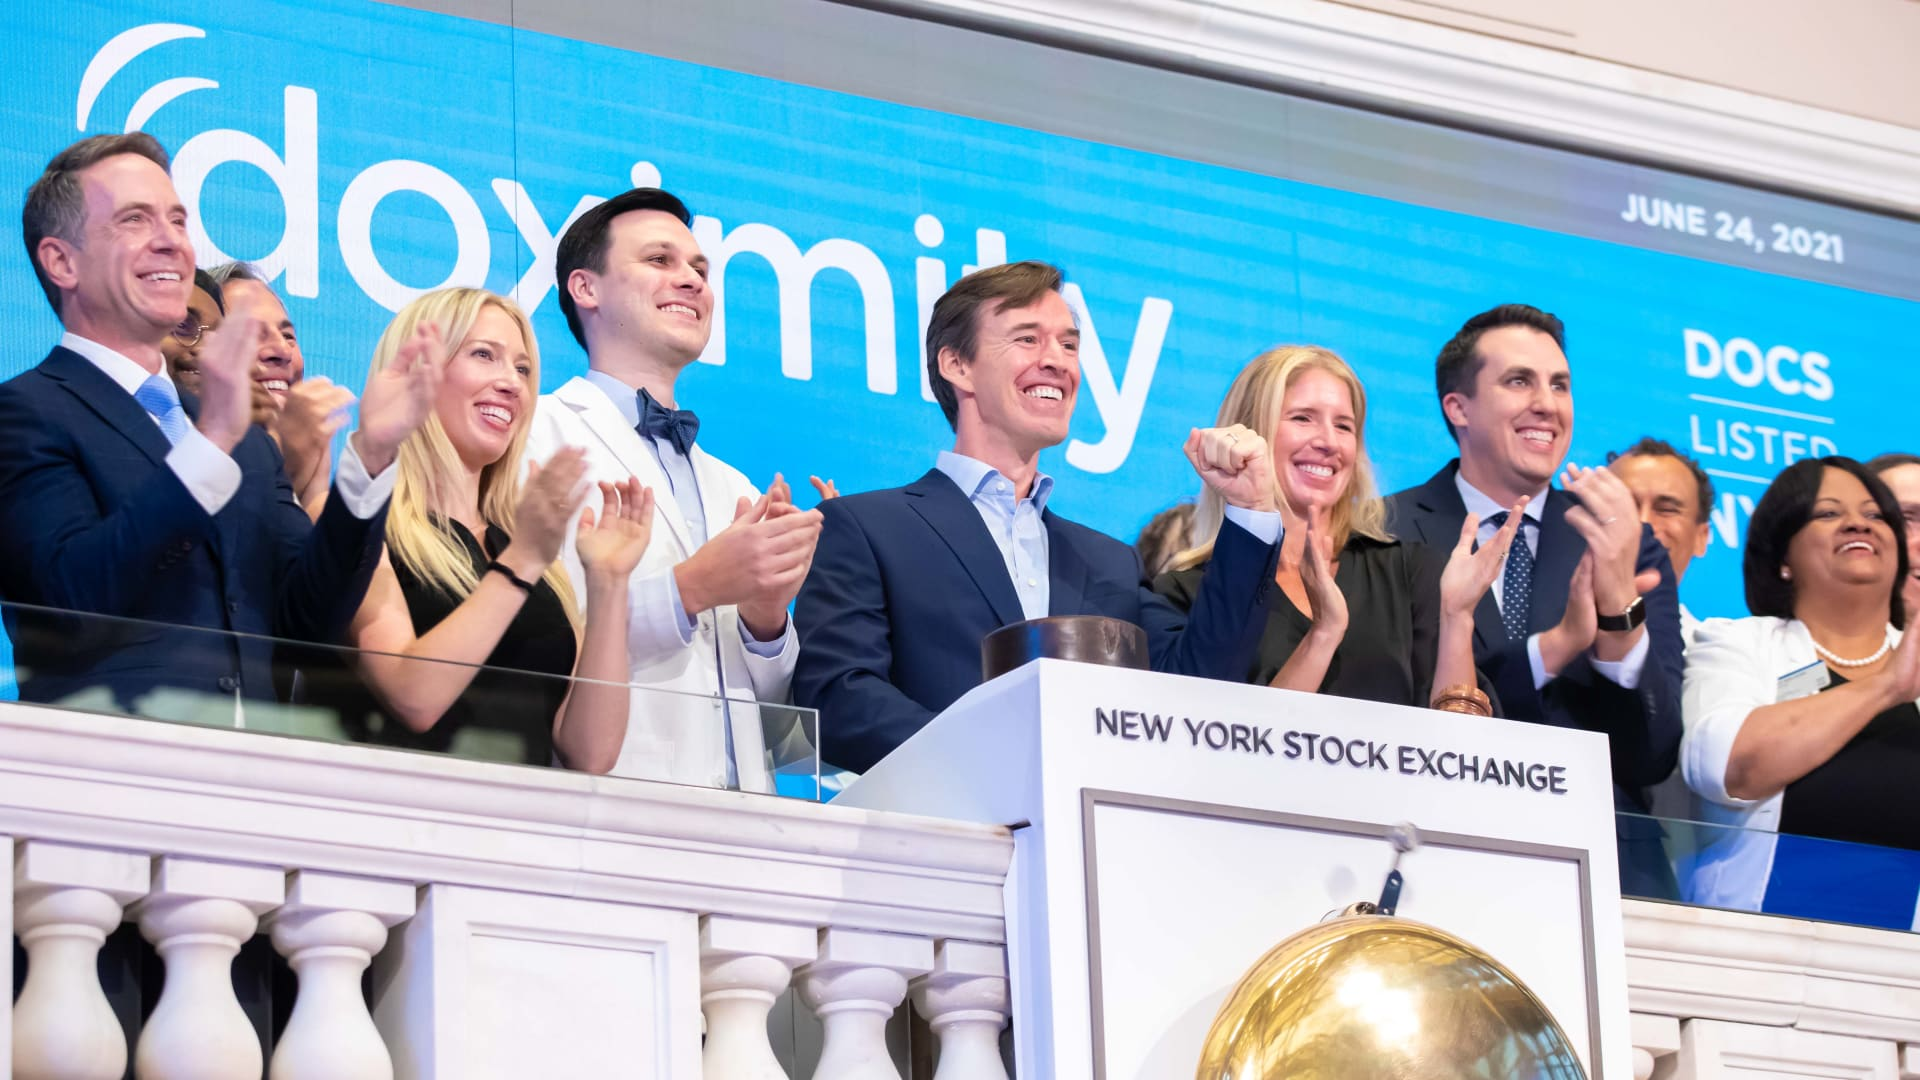 Jeff Tangney, CEO, of Doximity at the New York Stock Exchange for their IPO, June 24, 2021.